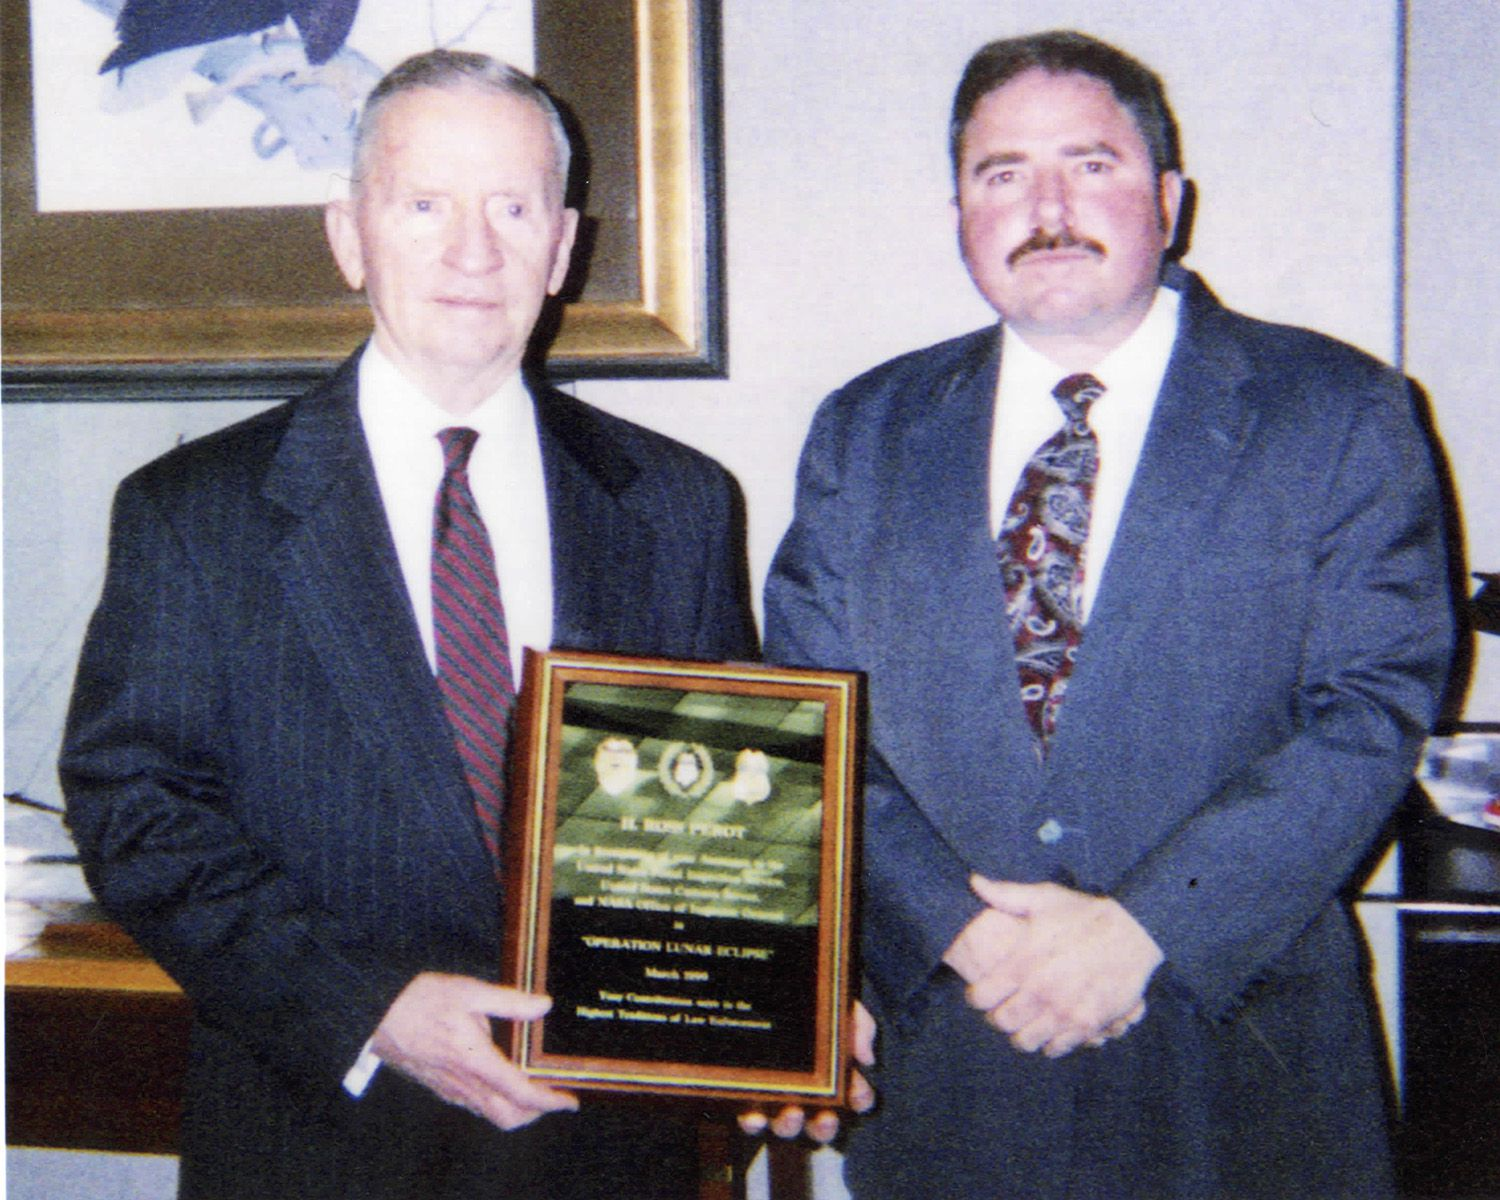 Ross Perot (left) is presented with a plaque by special agent Joseph Gutheinz (right) honoring him for his contribution to Operation Lunar Eclipse.